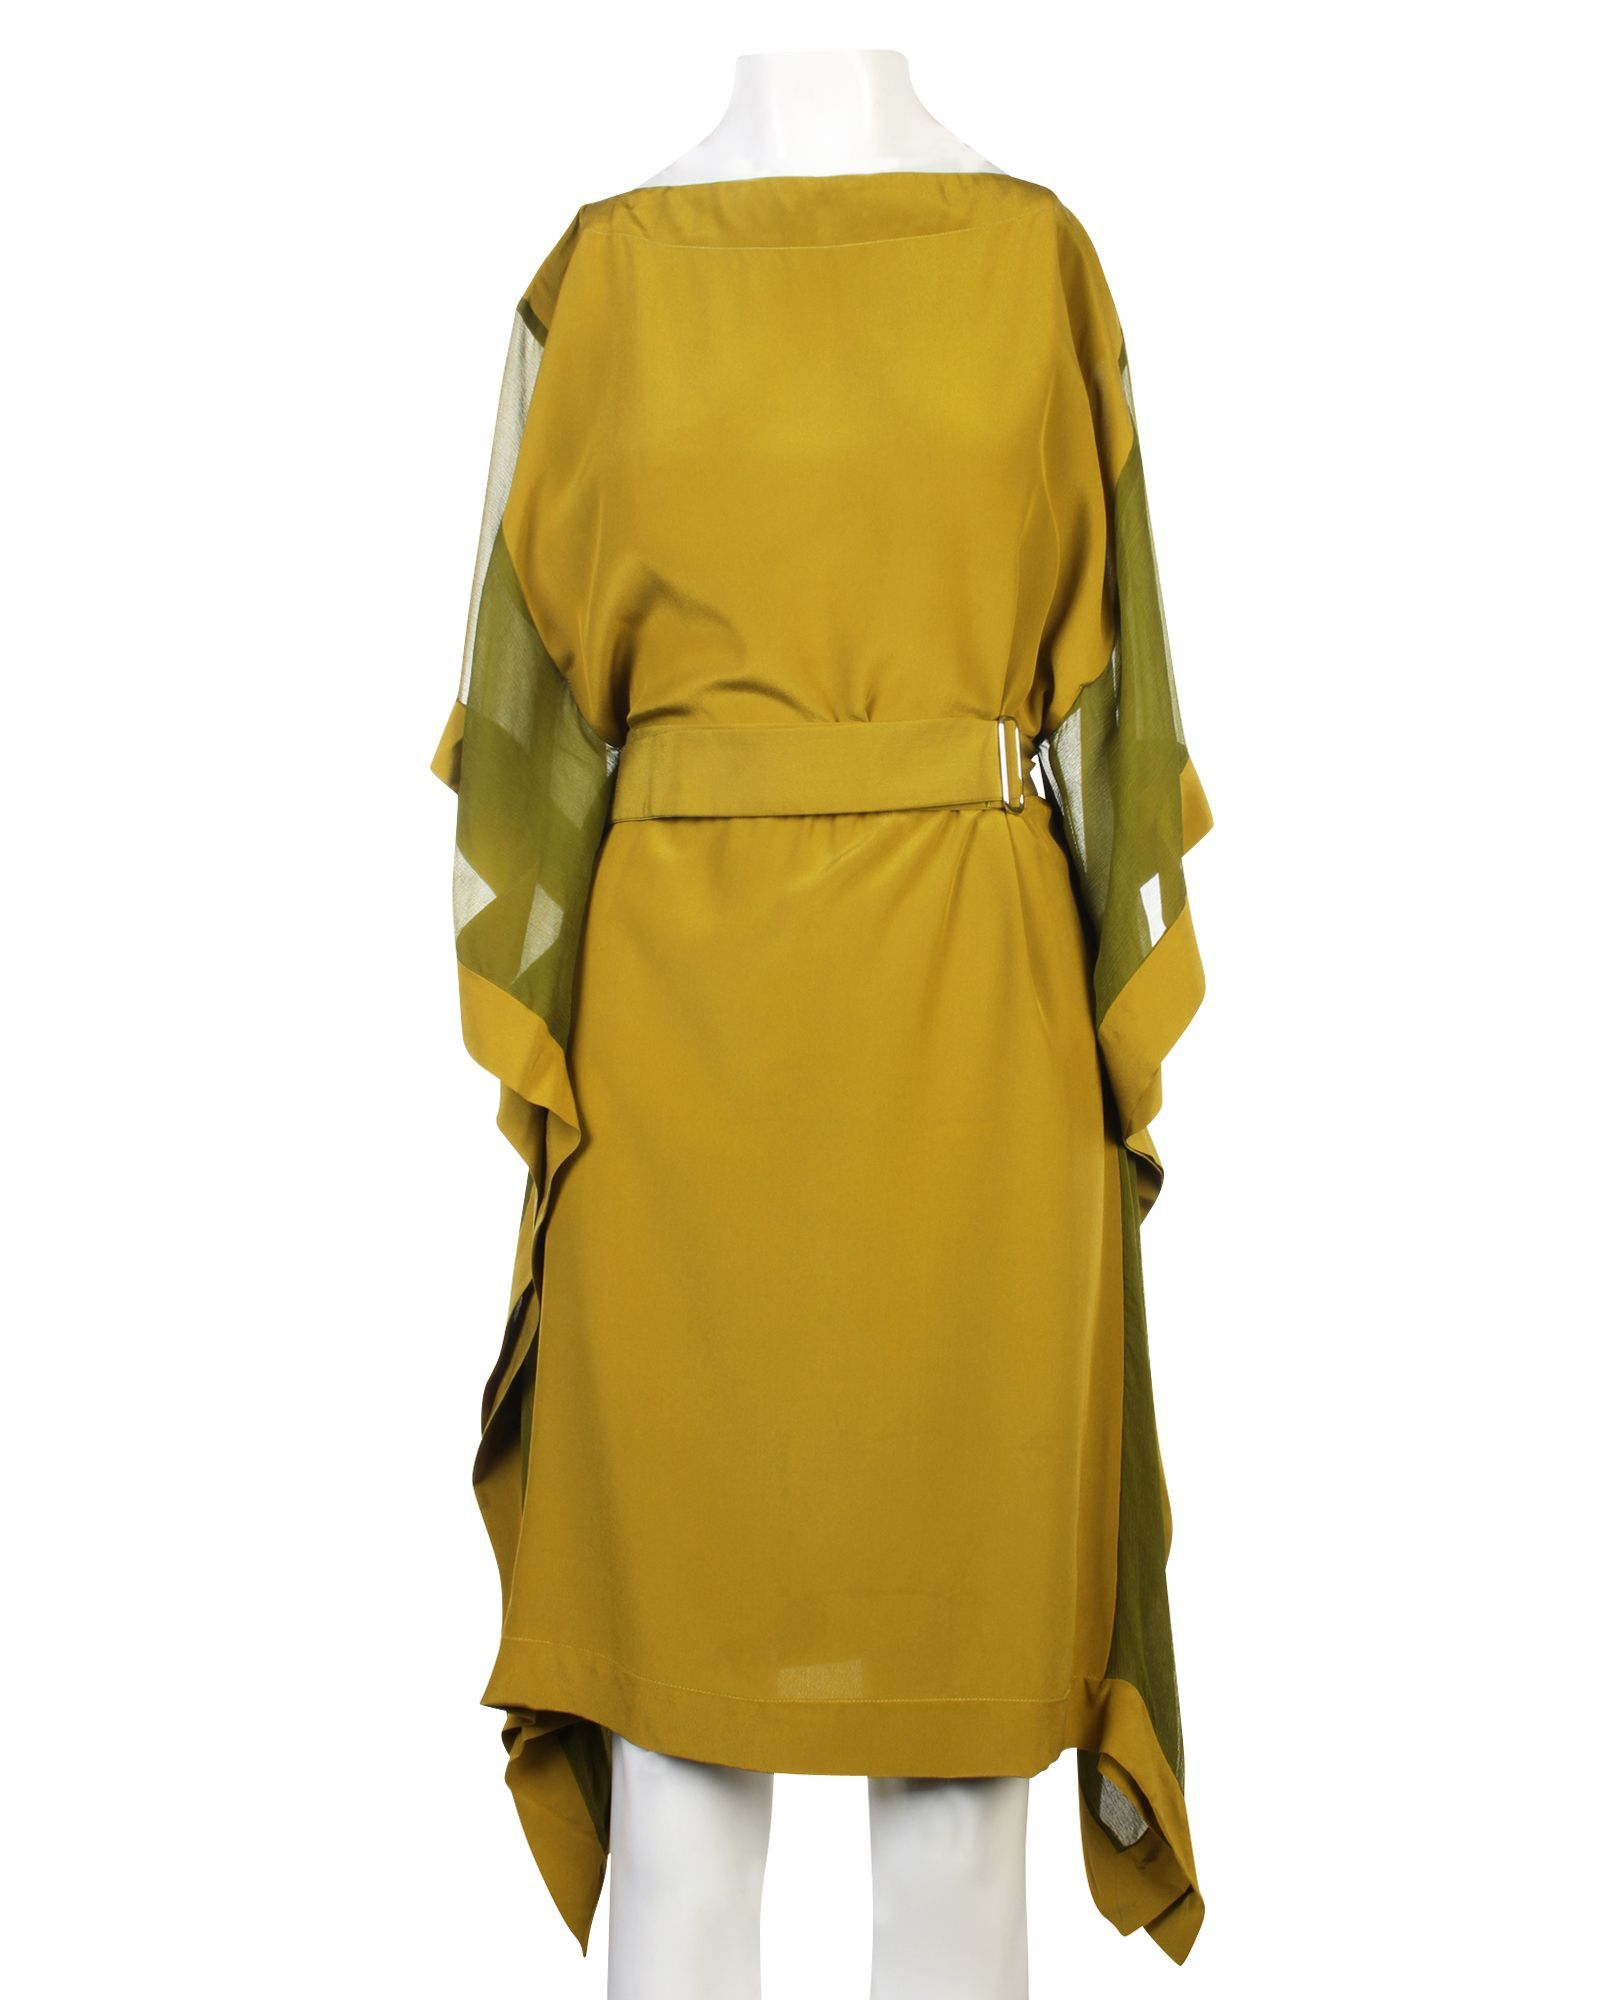 Hermès Silk Dress With Belt -Pre Owned Condition Very Good